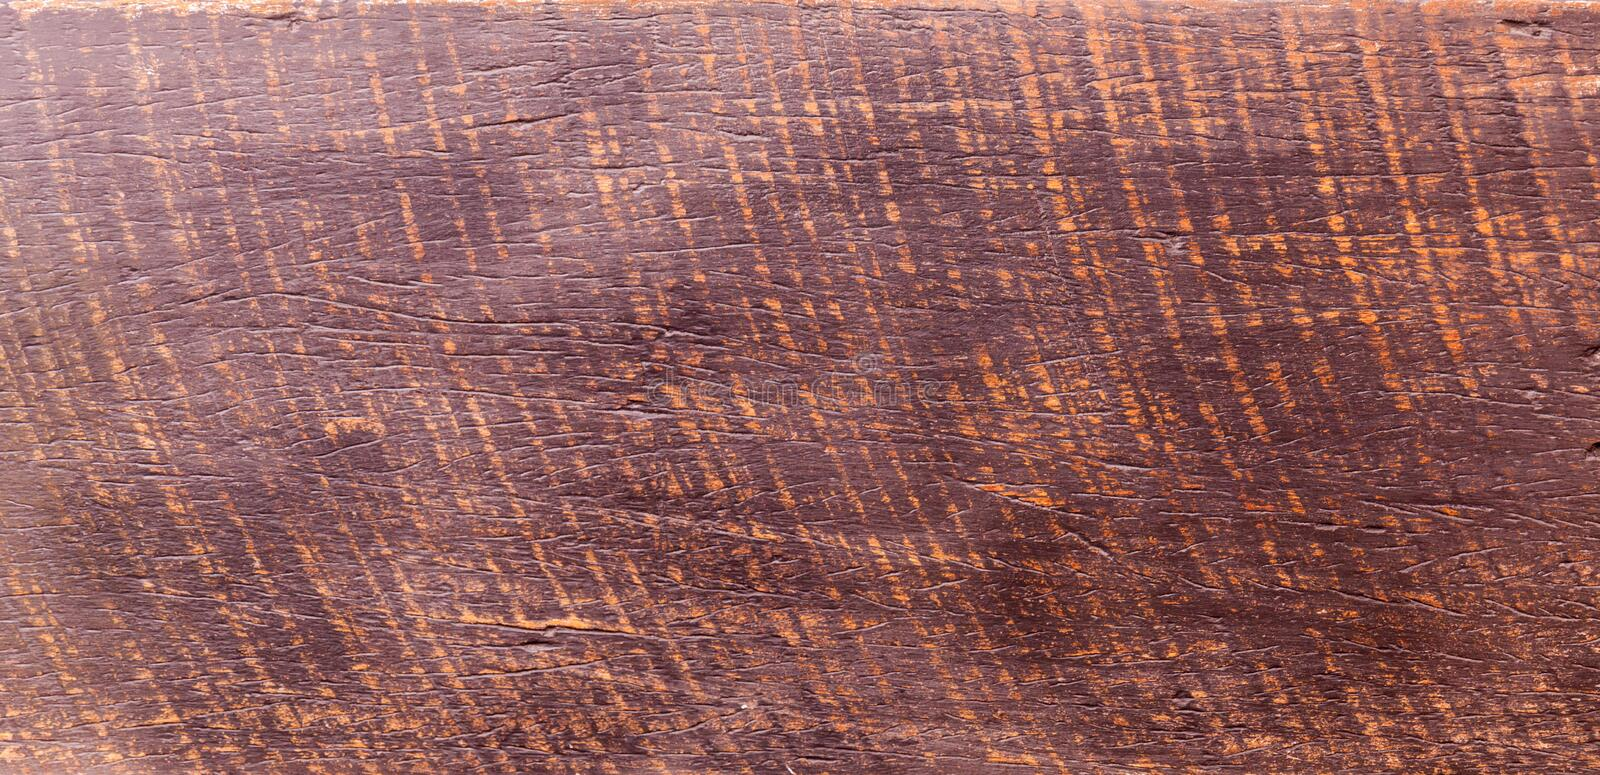 Grunge surface rustic wooden table top view. Wood texture background surface with old natural pattern. tropical rosewood stock photography